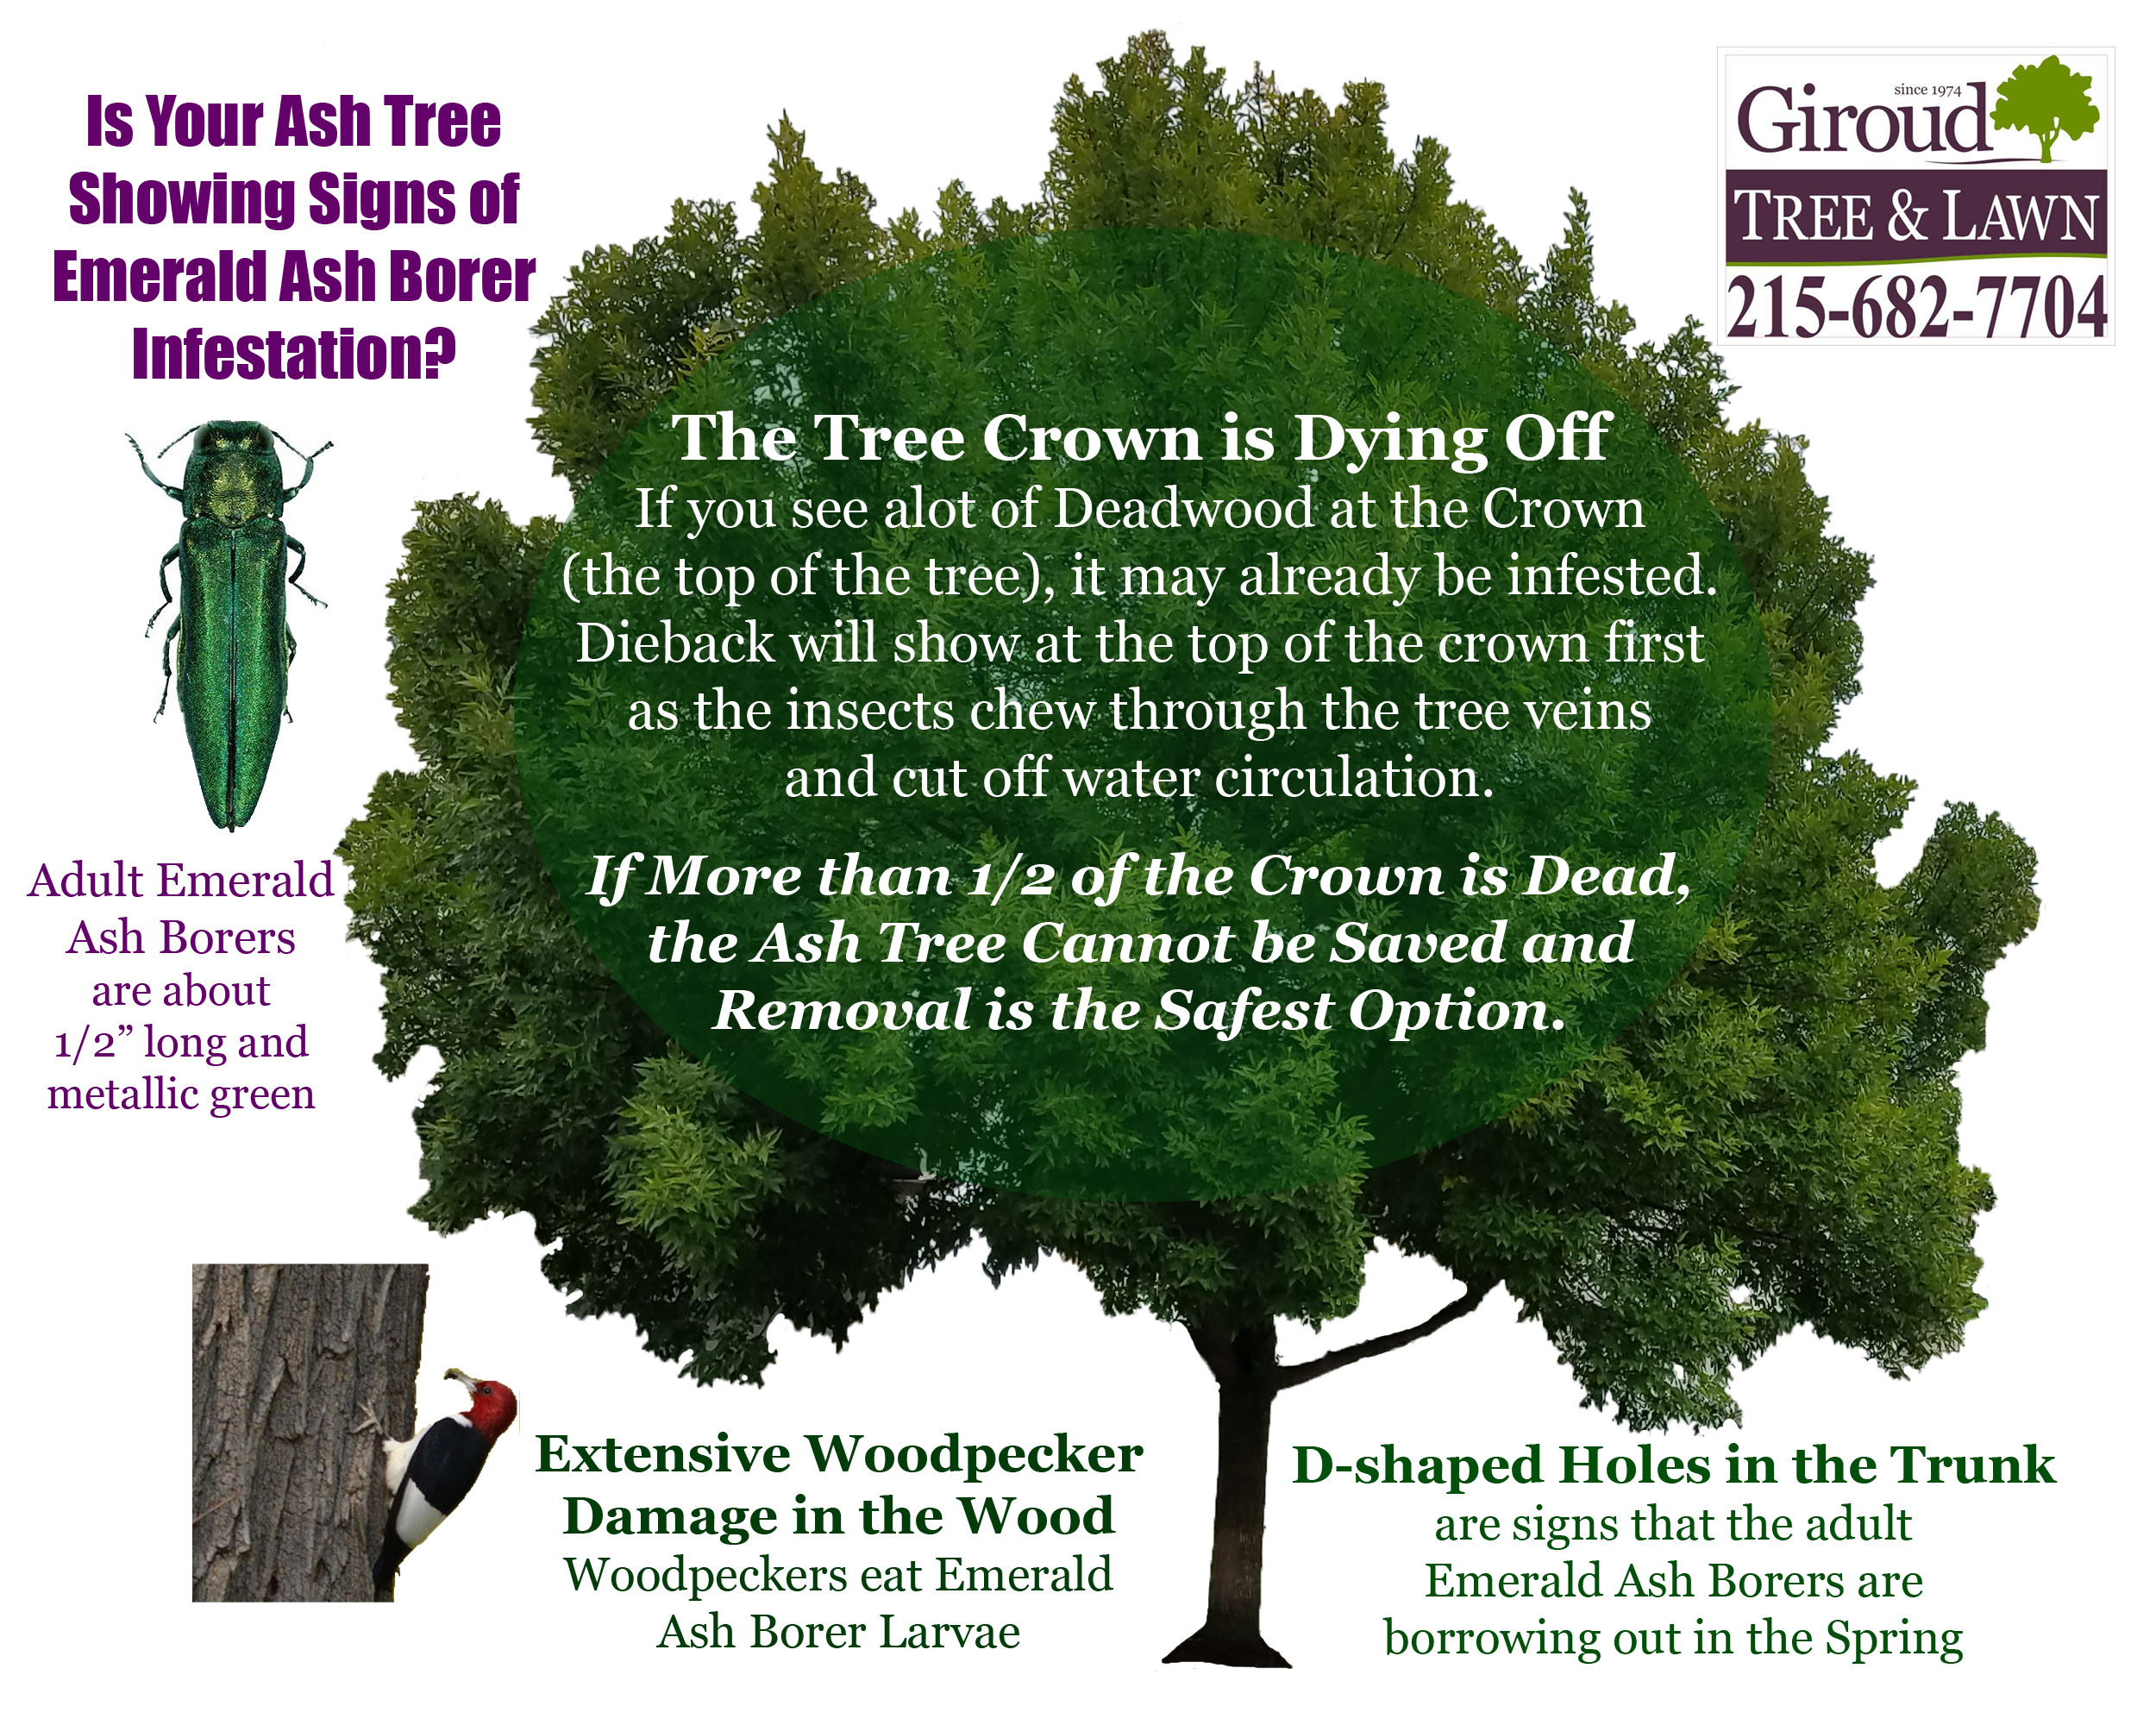 2018-Success-in-the-fight-against-emerald-ash-borer-Are-Your-Trees-Infected-1